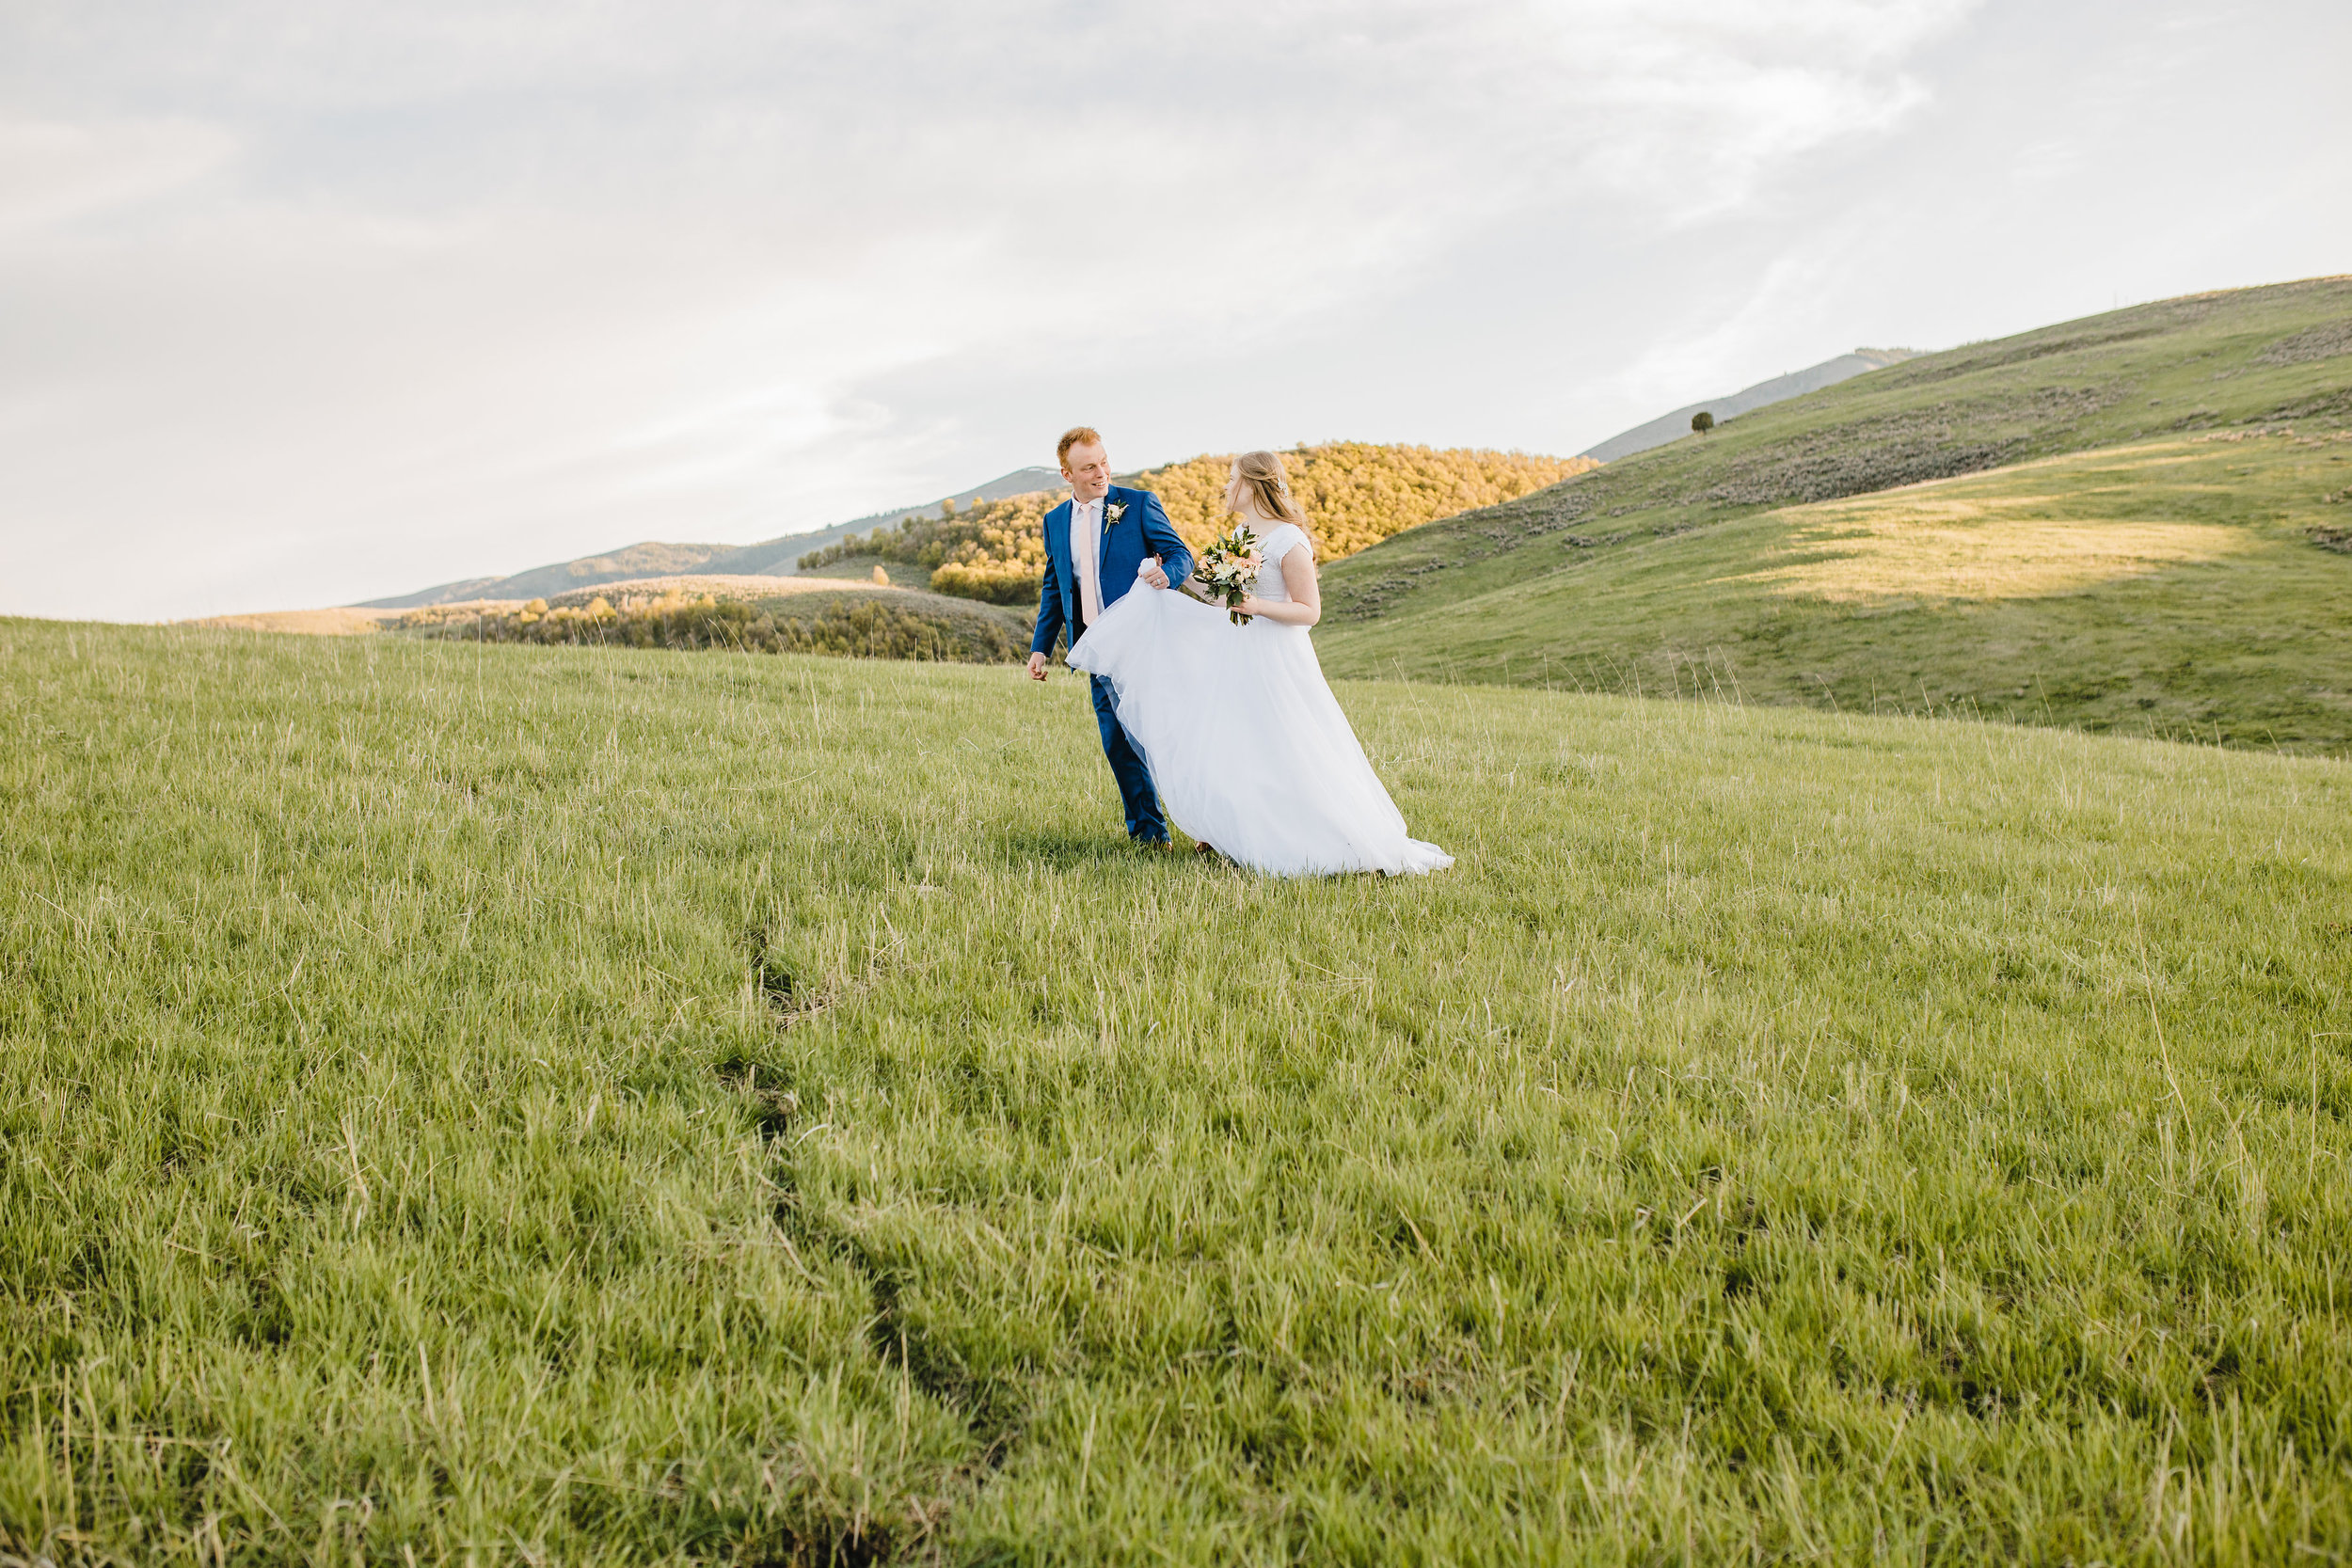 adventurous formal photography shoot arvada colorado wedding day photographer for adventurous couples rolling hills arvada co